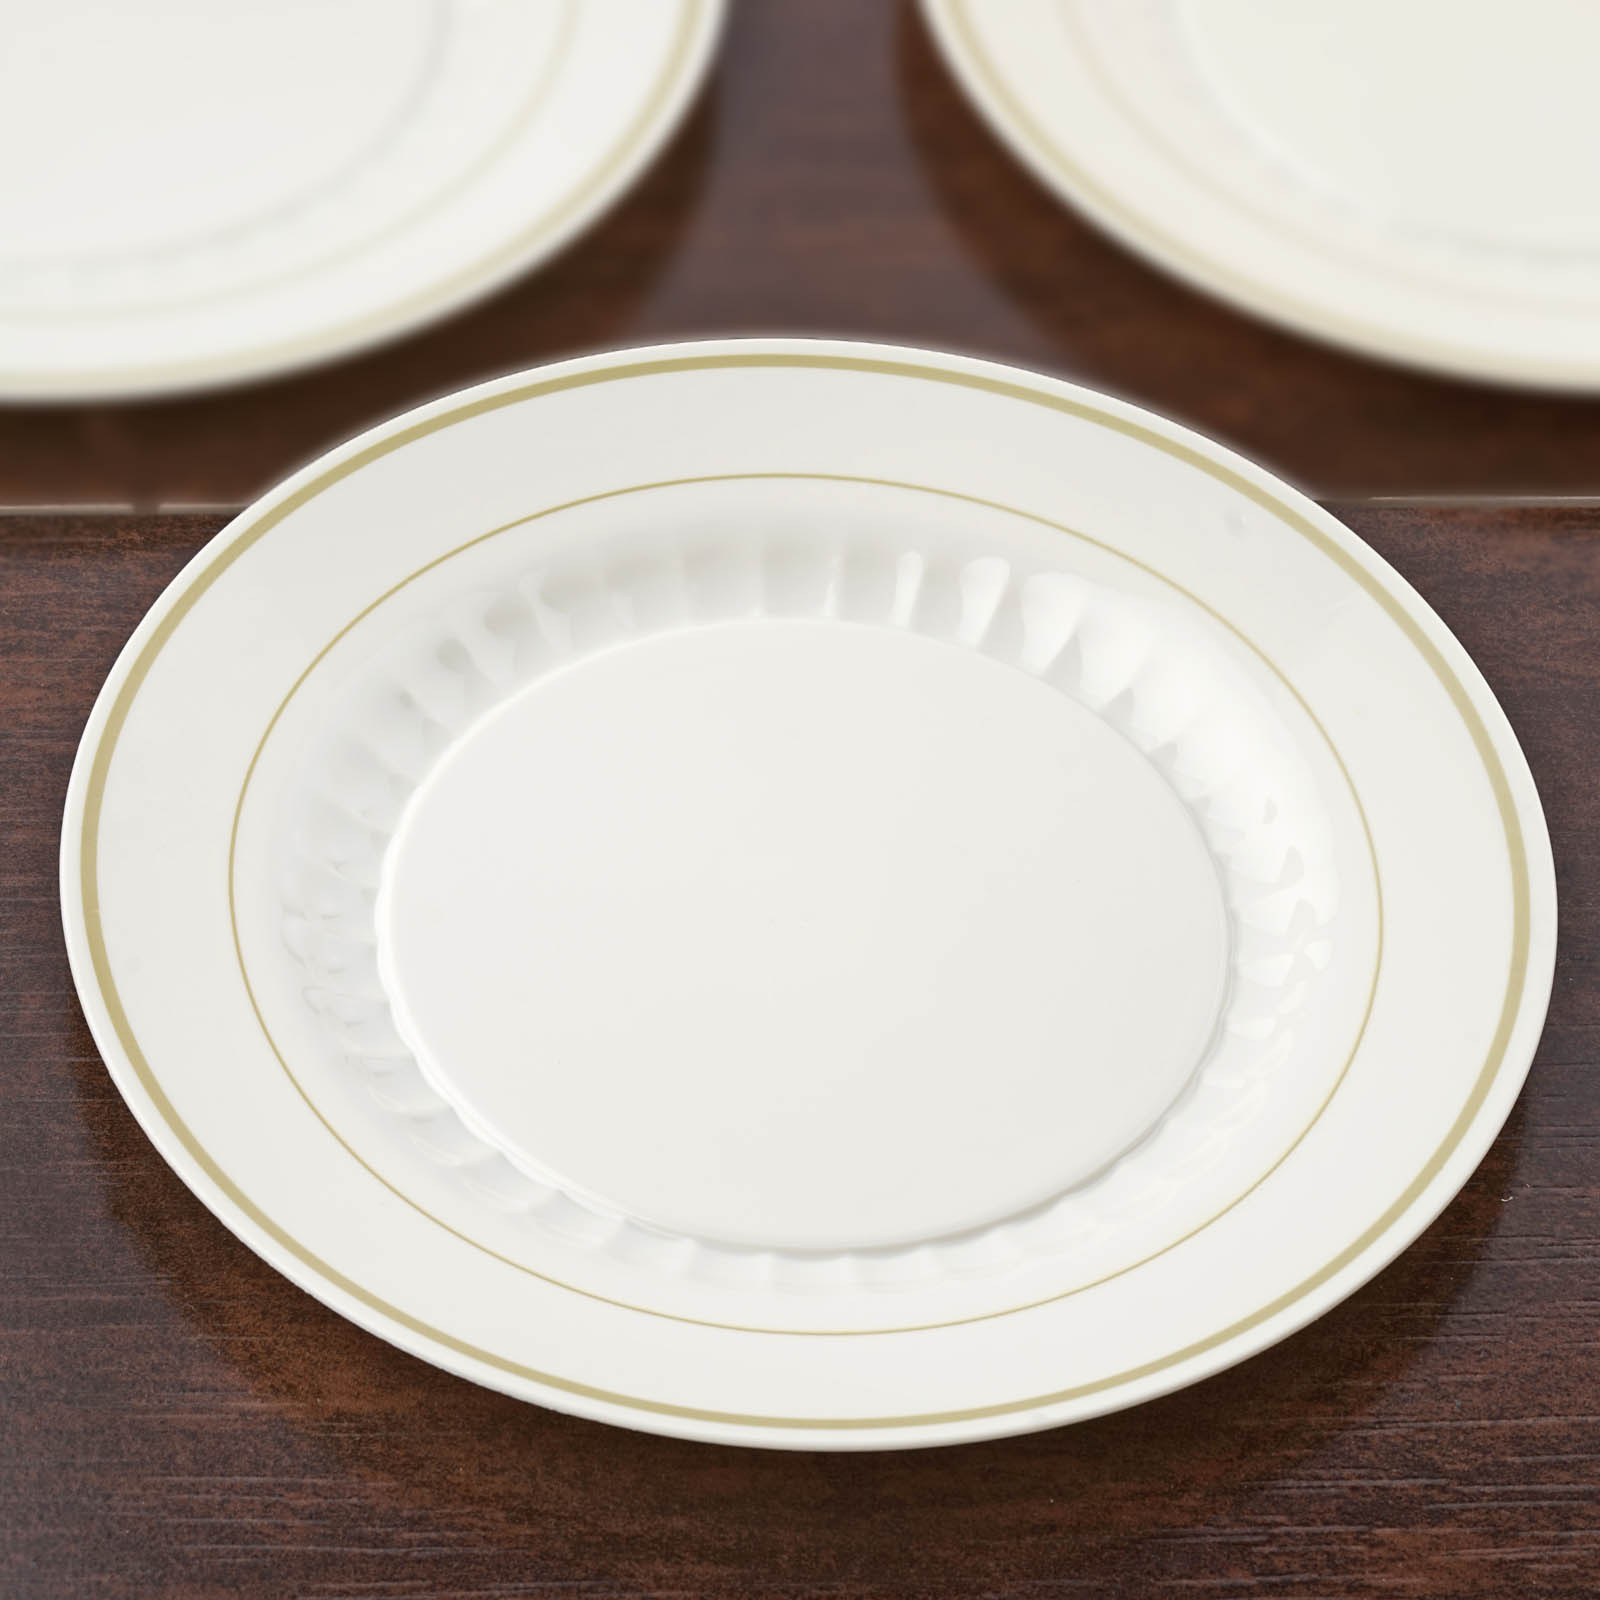 Efavormart 60 Pcs - Ivory with Gold Round Disposable Plastic Plate Dinner Plates for Wedding Party Banquet - Antique Collection